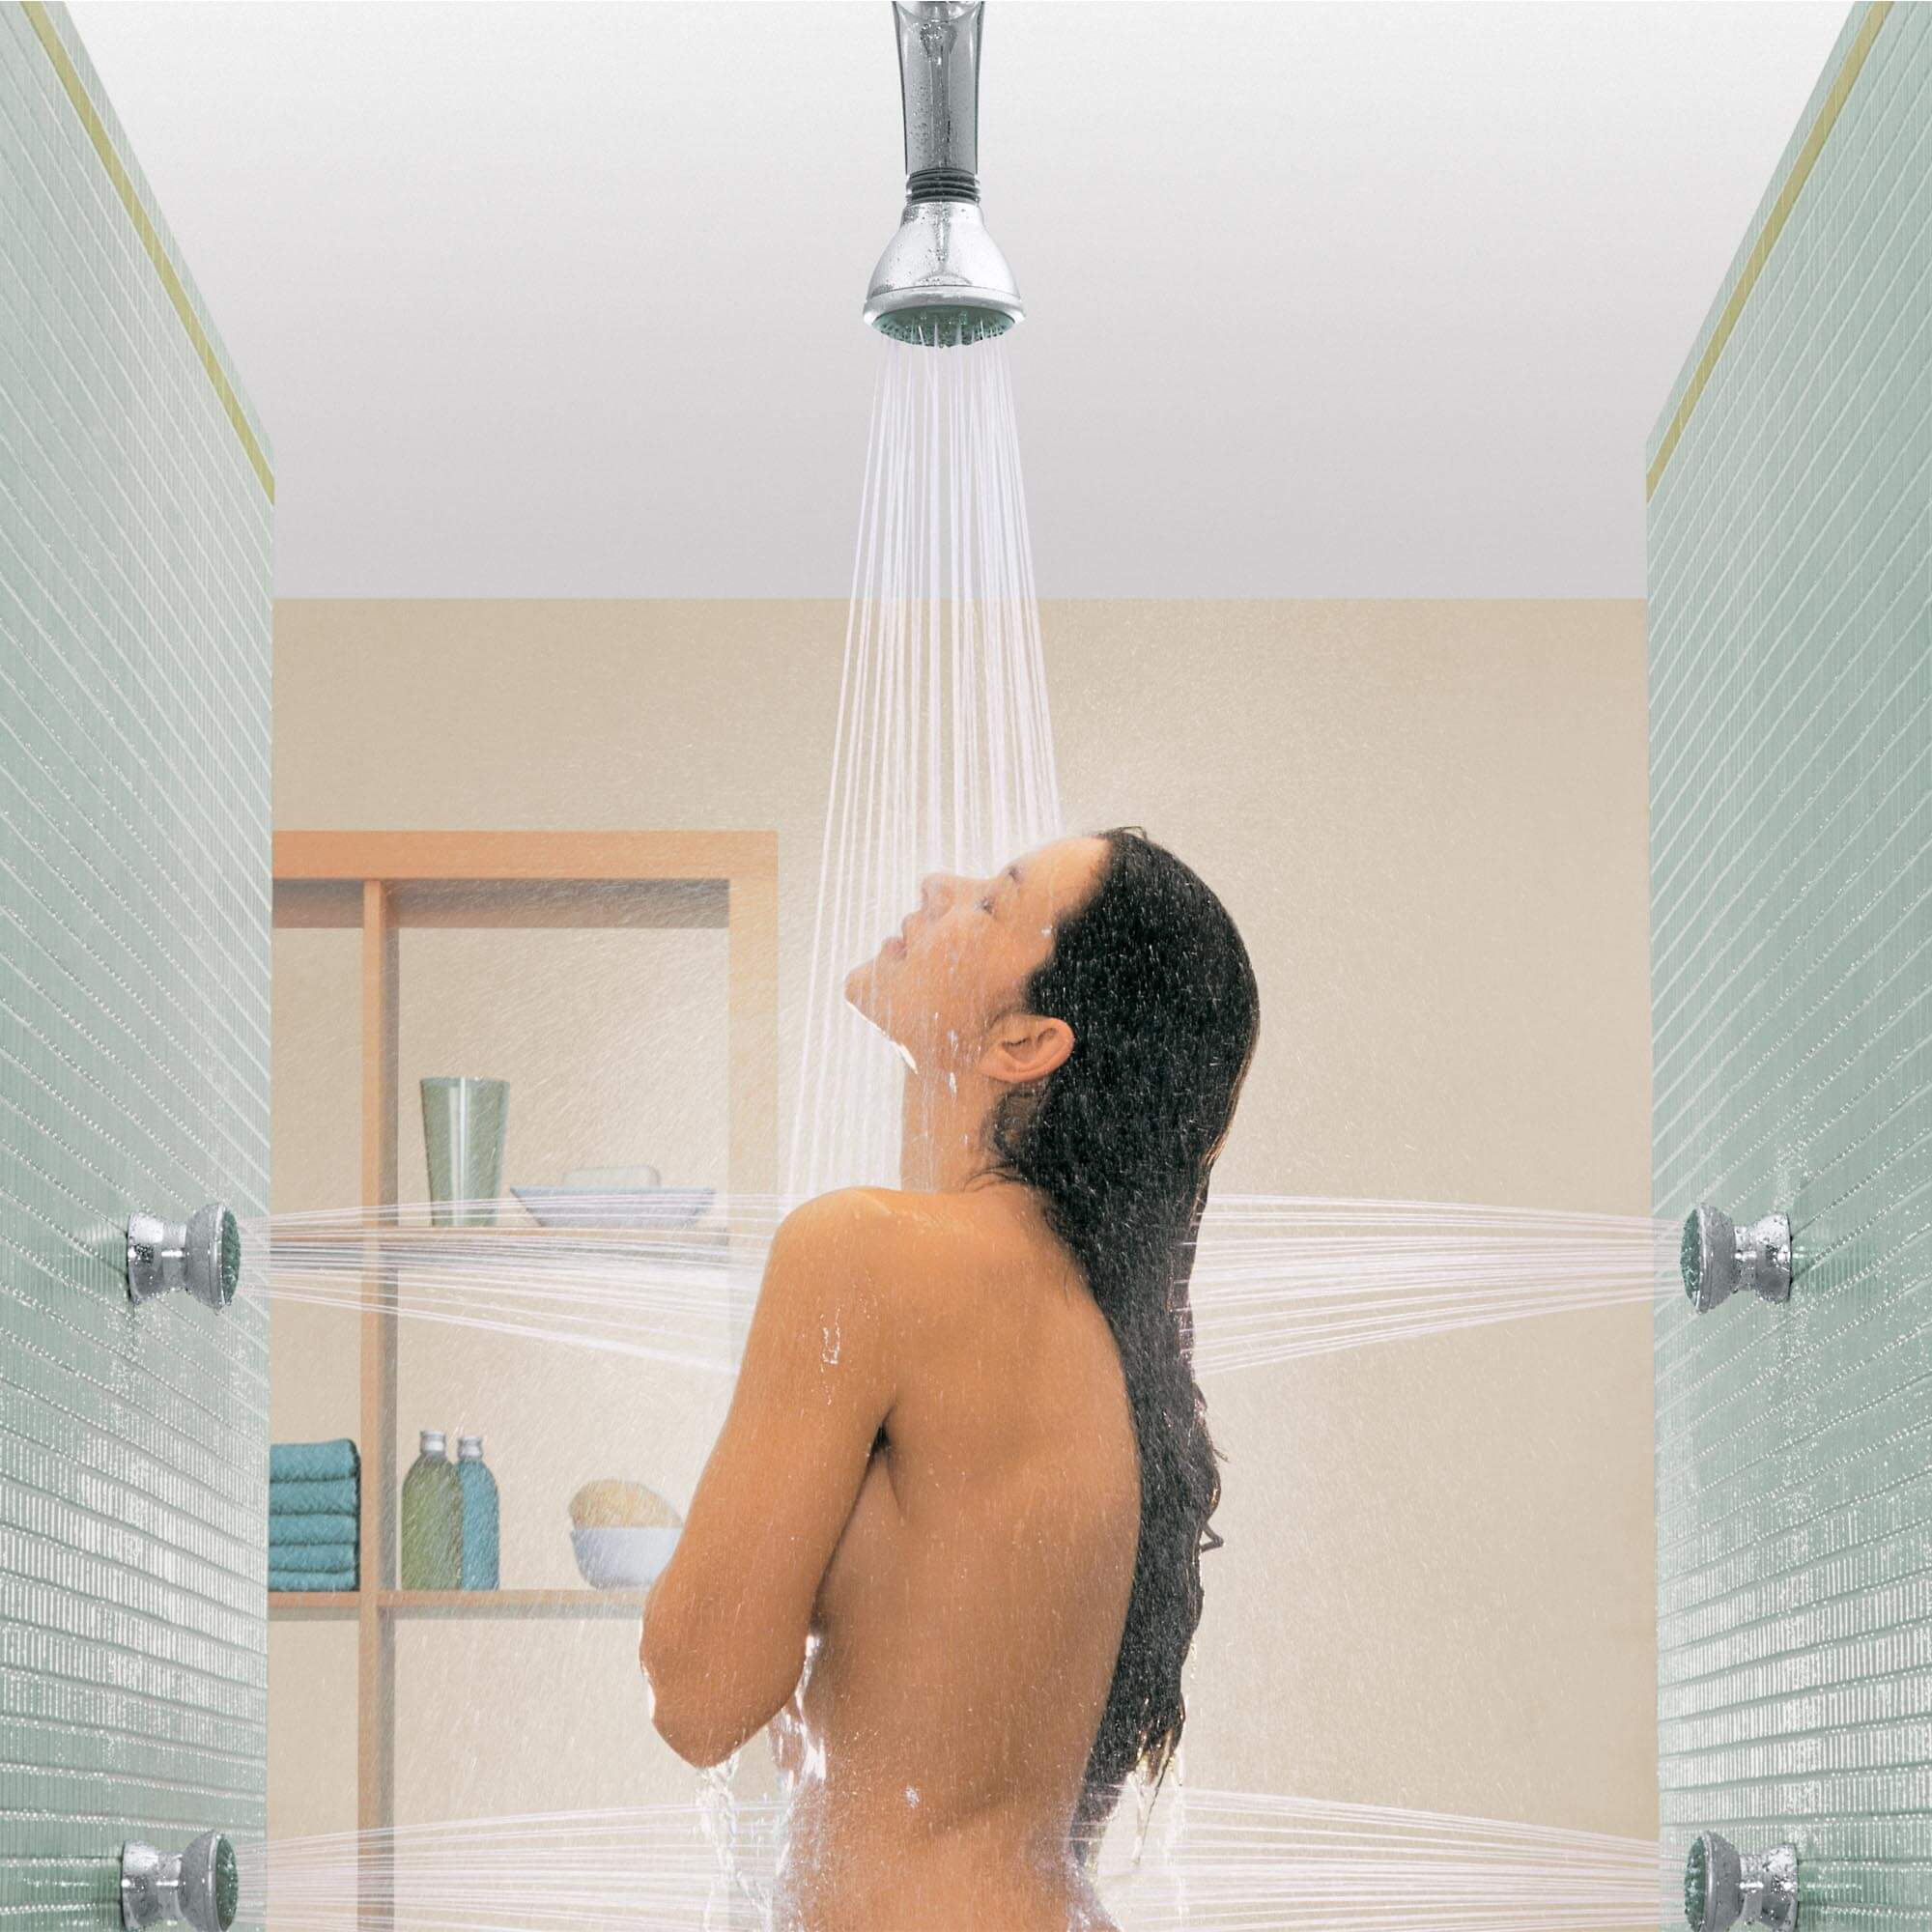 Movario Shower Collection - Woman in shower using ceiling showerhead and wall jet sprays